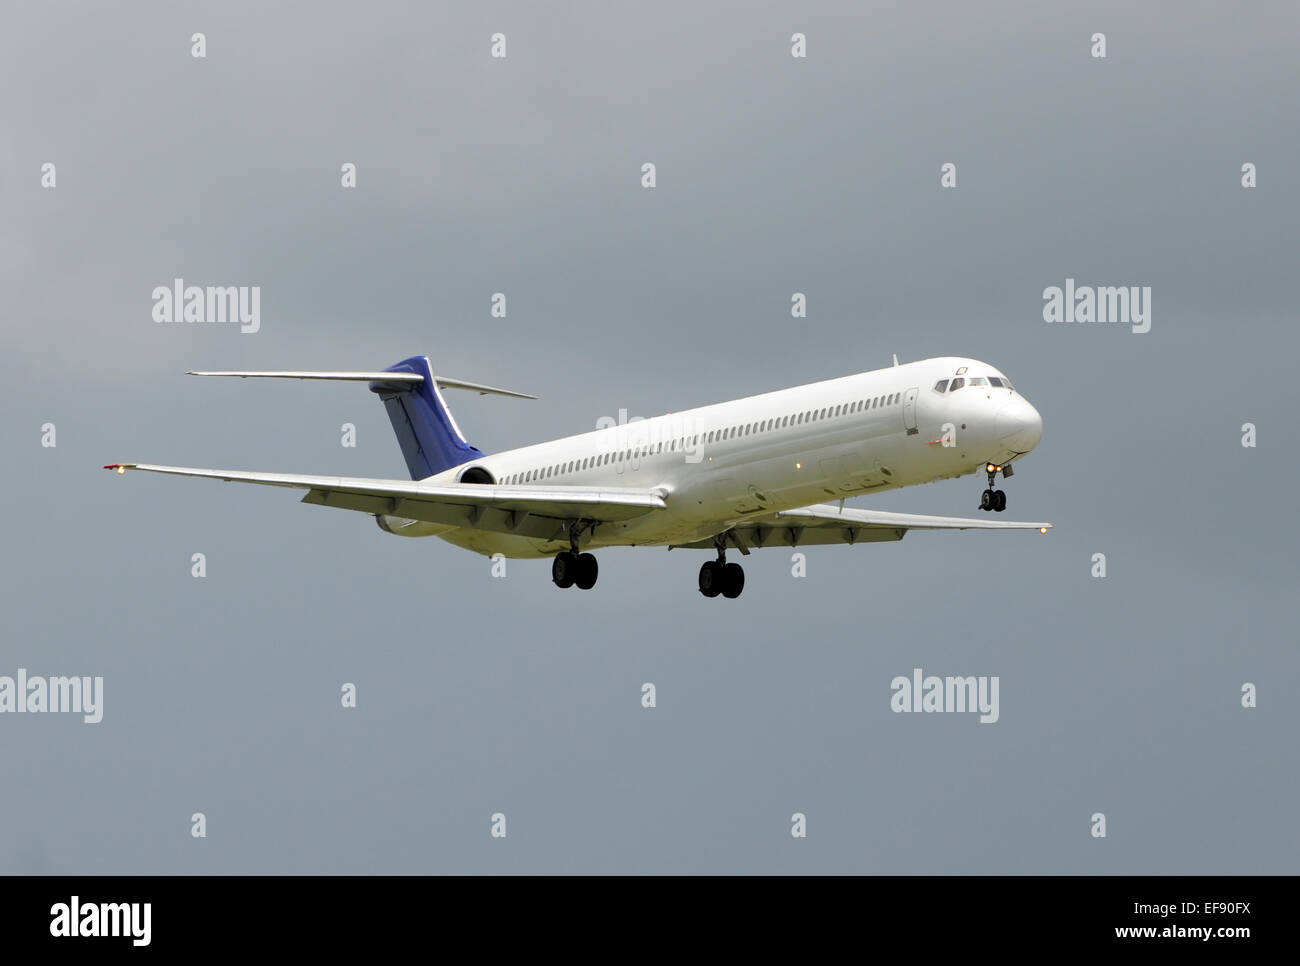 Jet airplane approaching airport for landing - Stock Image